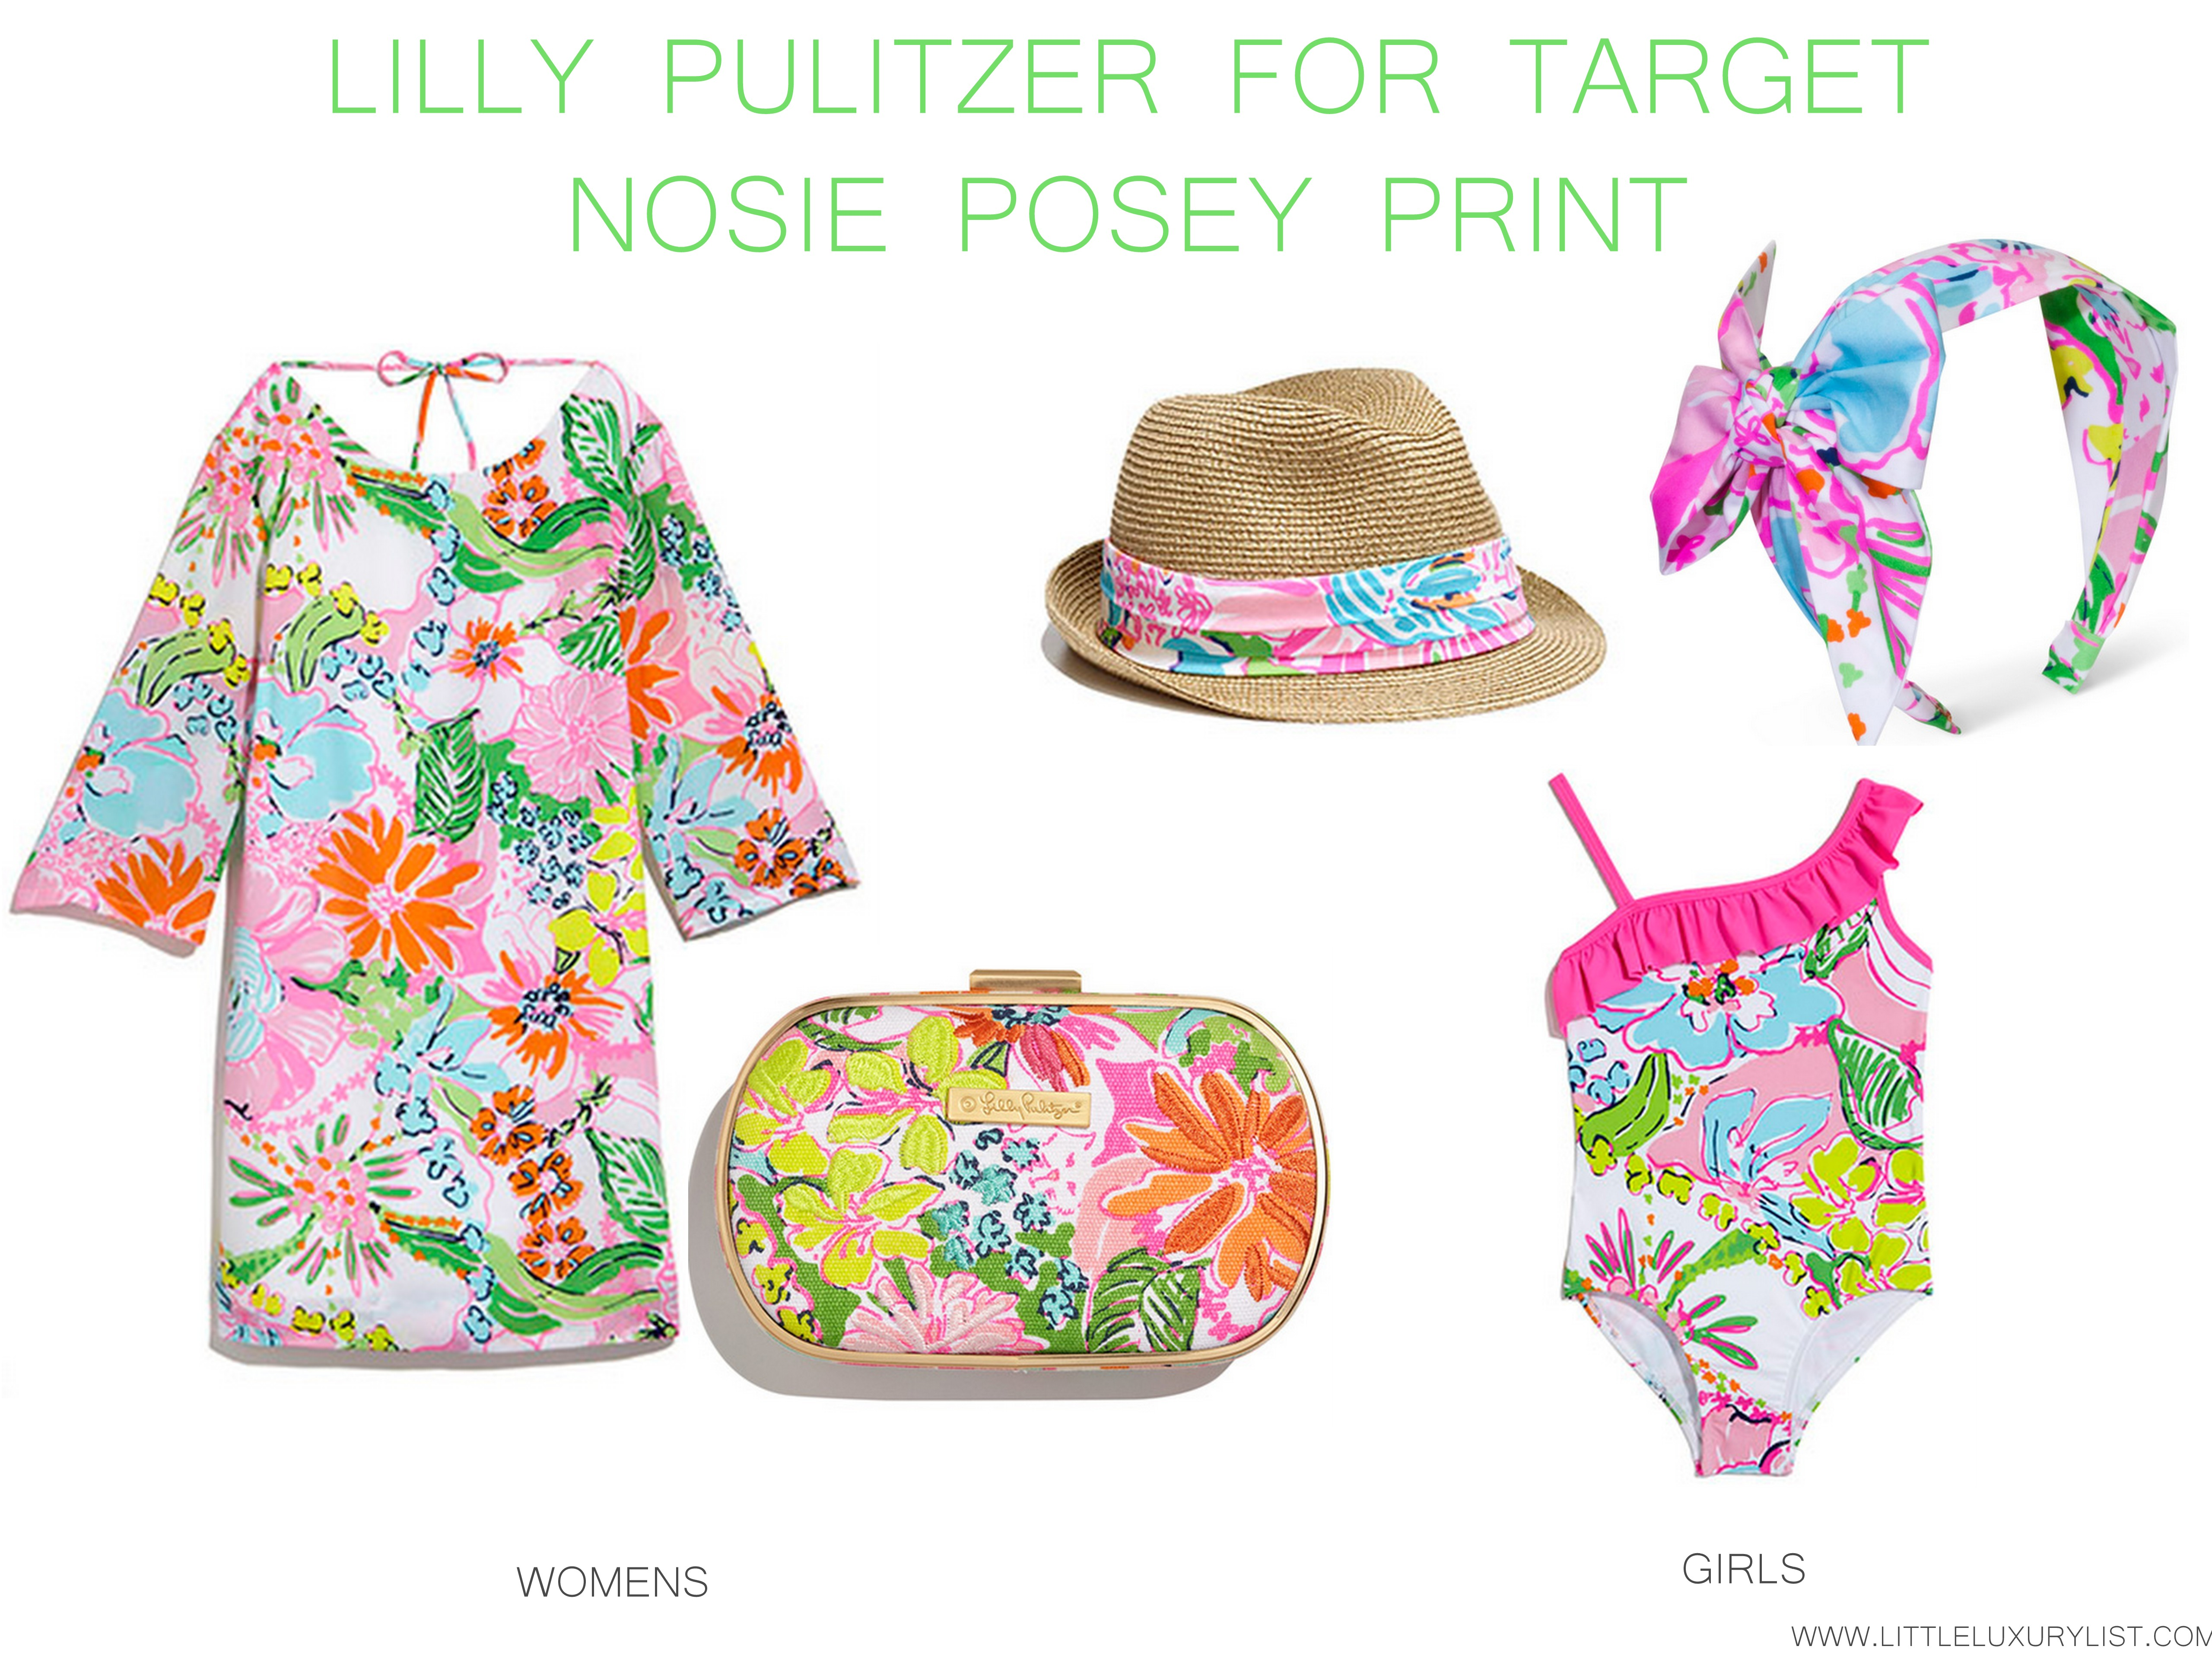 Lilly Pulitzer for Tar Sea nosie posey print little luxury list